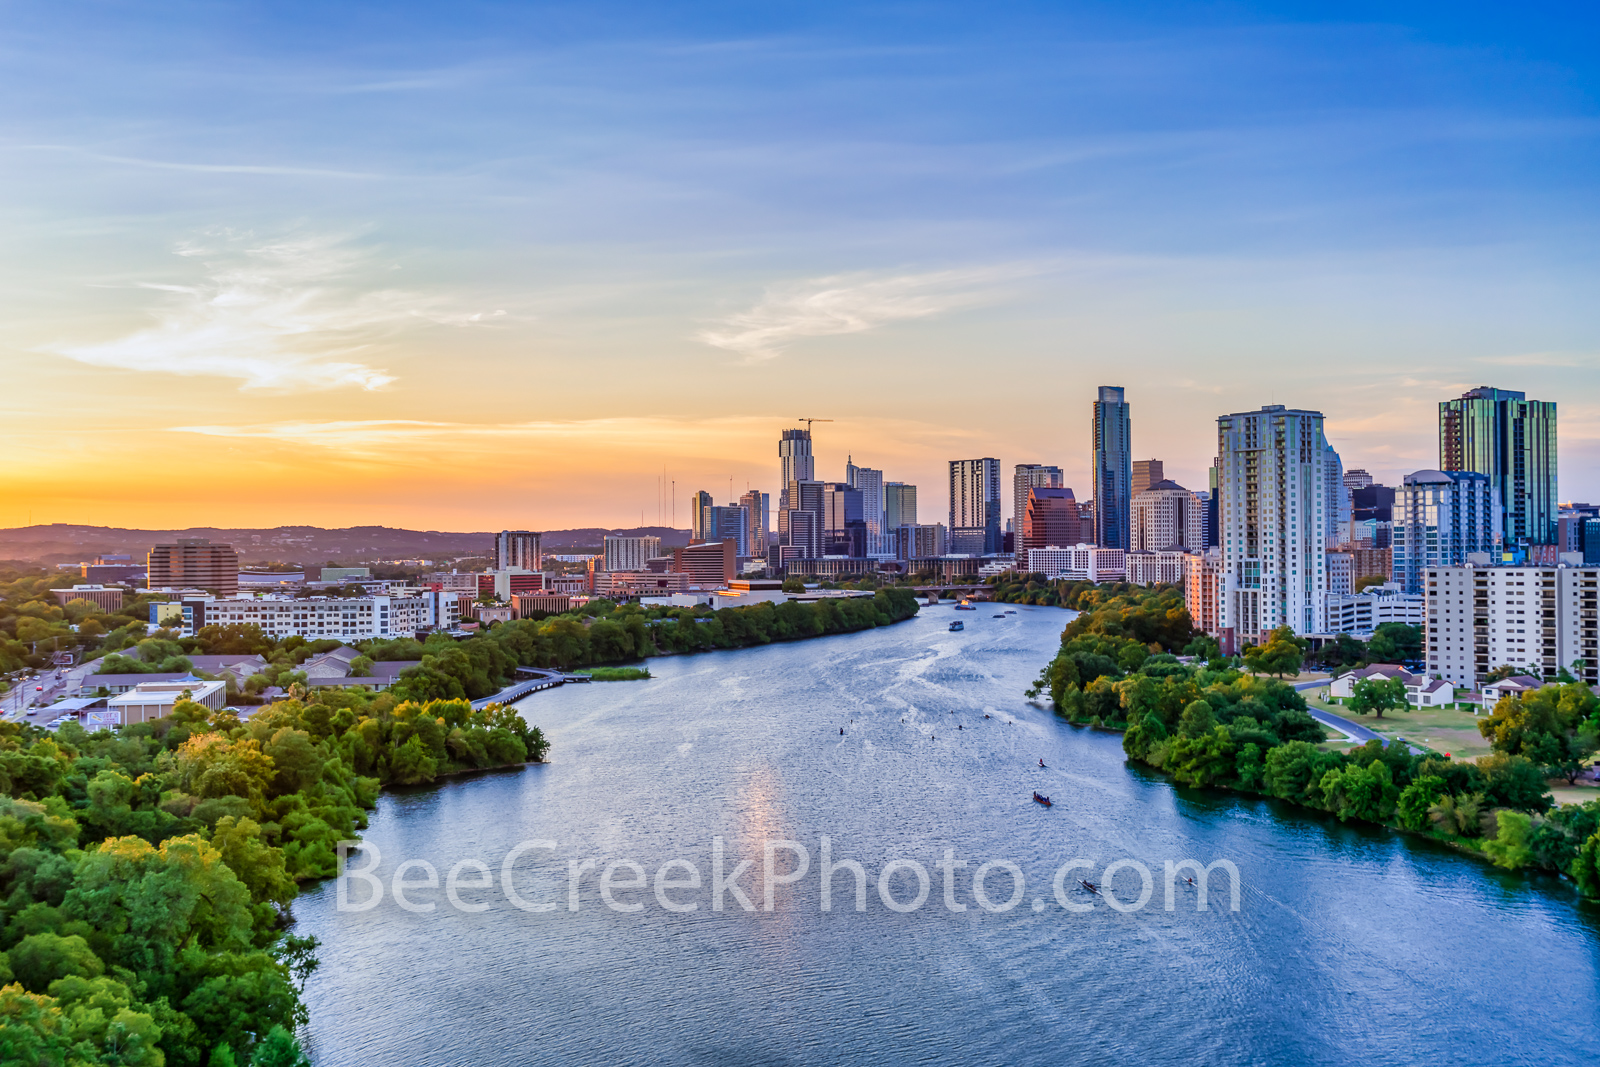 Austin skyline, austin skyline aerial, austin skyline pictures, austin skyline images, images of austin skyline, aerial, drone, austin, night, twilight, dark, lady bird lake, high rise buildings, arch, photo